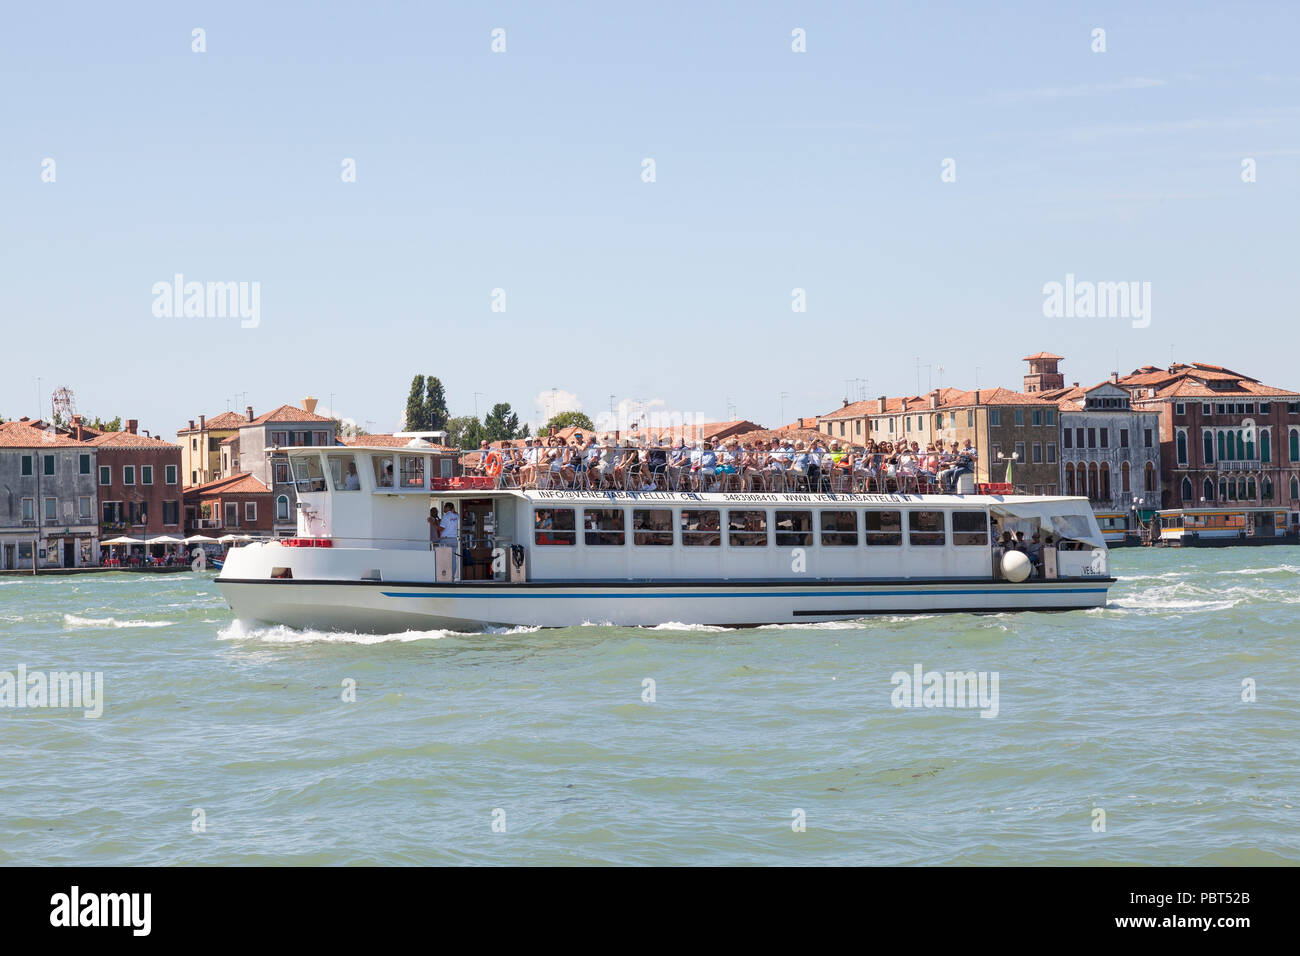 Large tour group on the upper deck of a tour boat sightseeing on the  Giudecca Canal, Venice, Veneto, Italy. Stock Photo